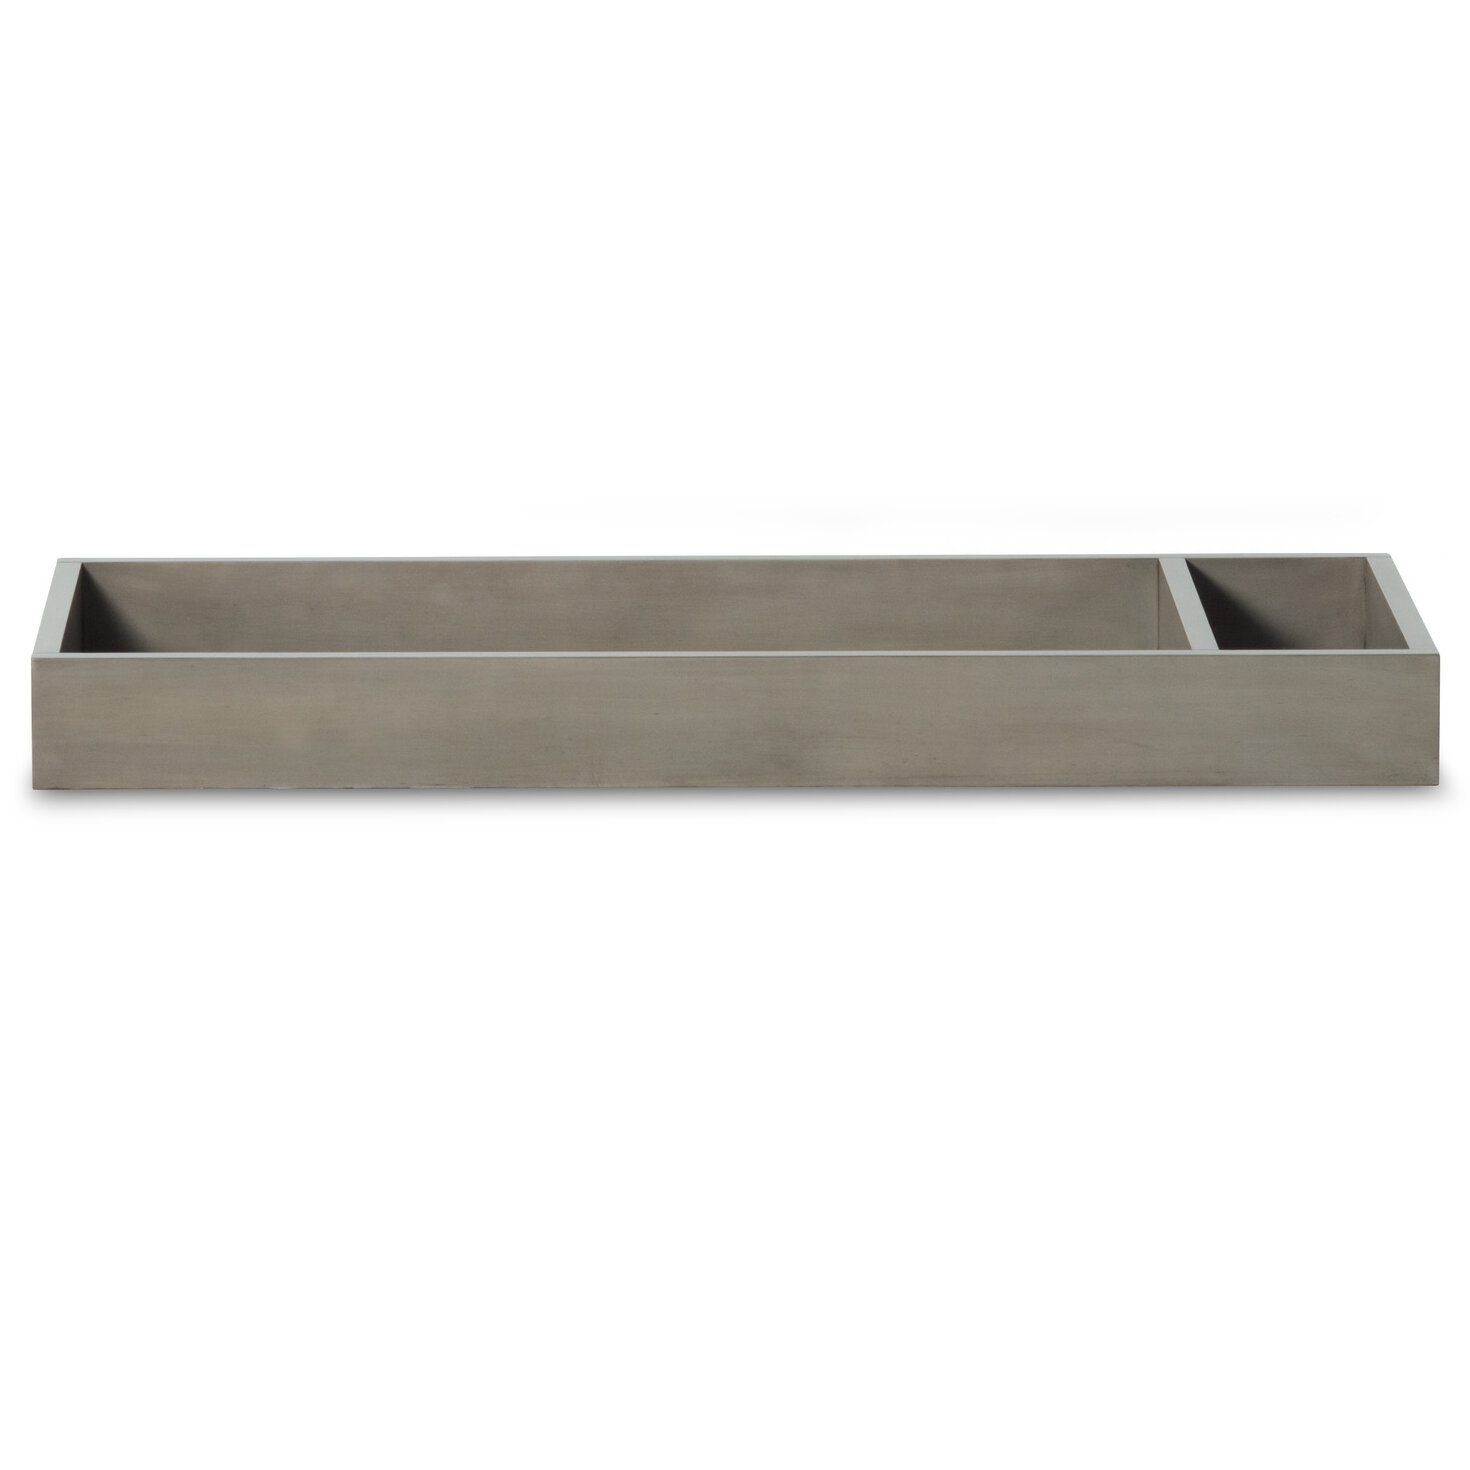 0e64ea0204f5 Child Craft Universal Changing Table Topper | Wayfair